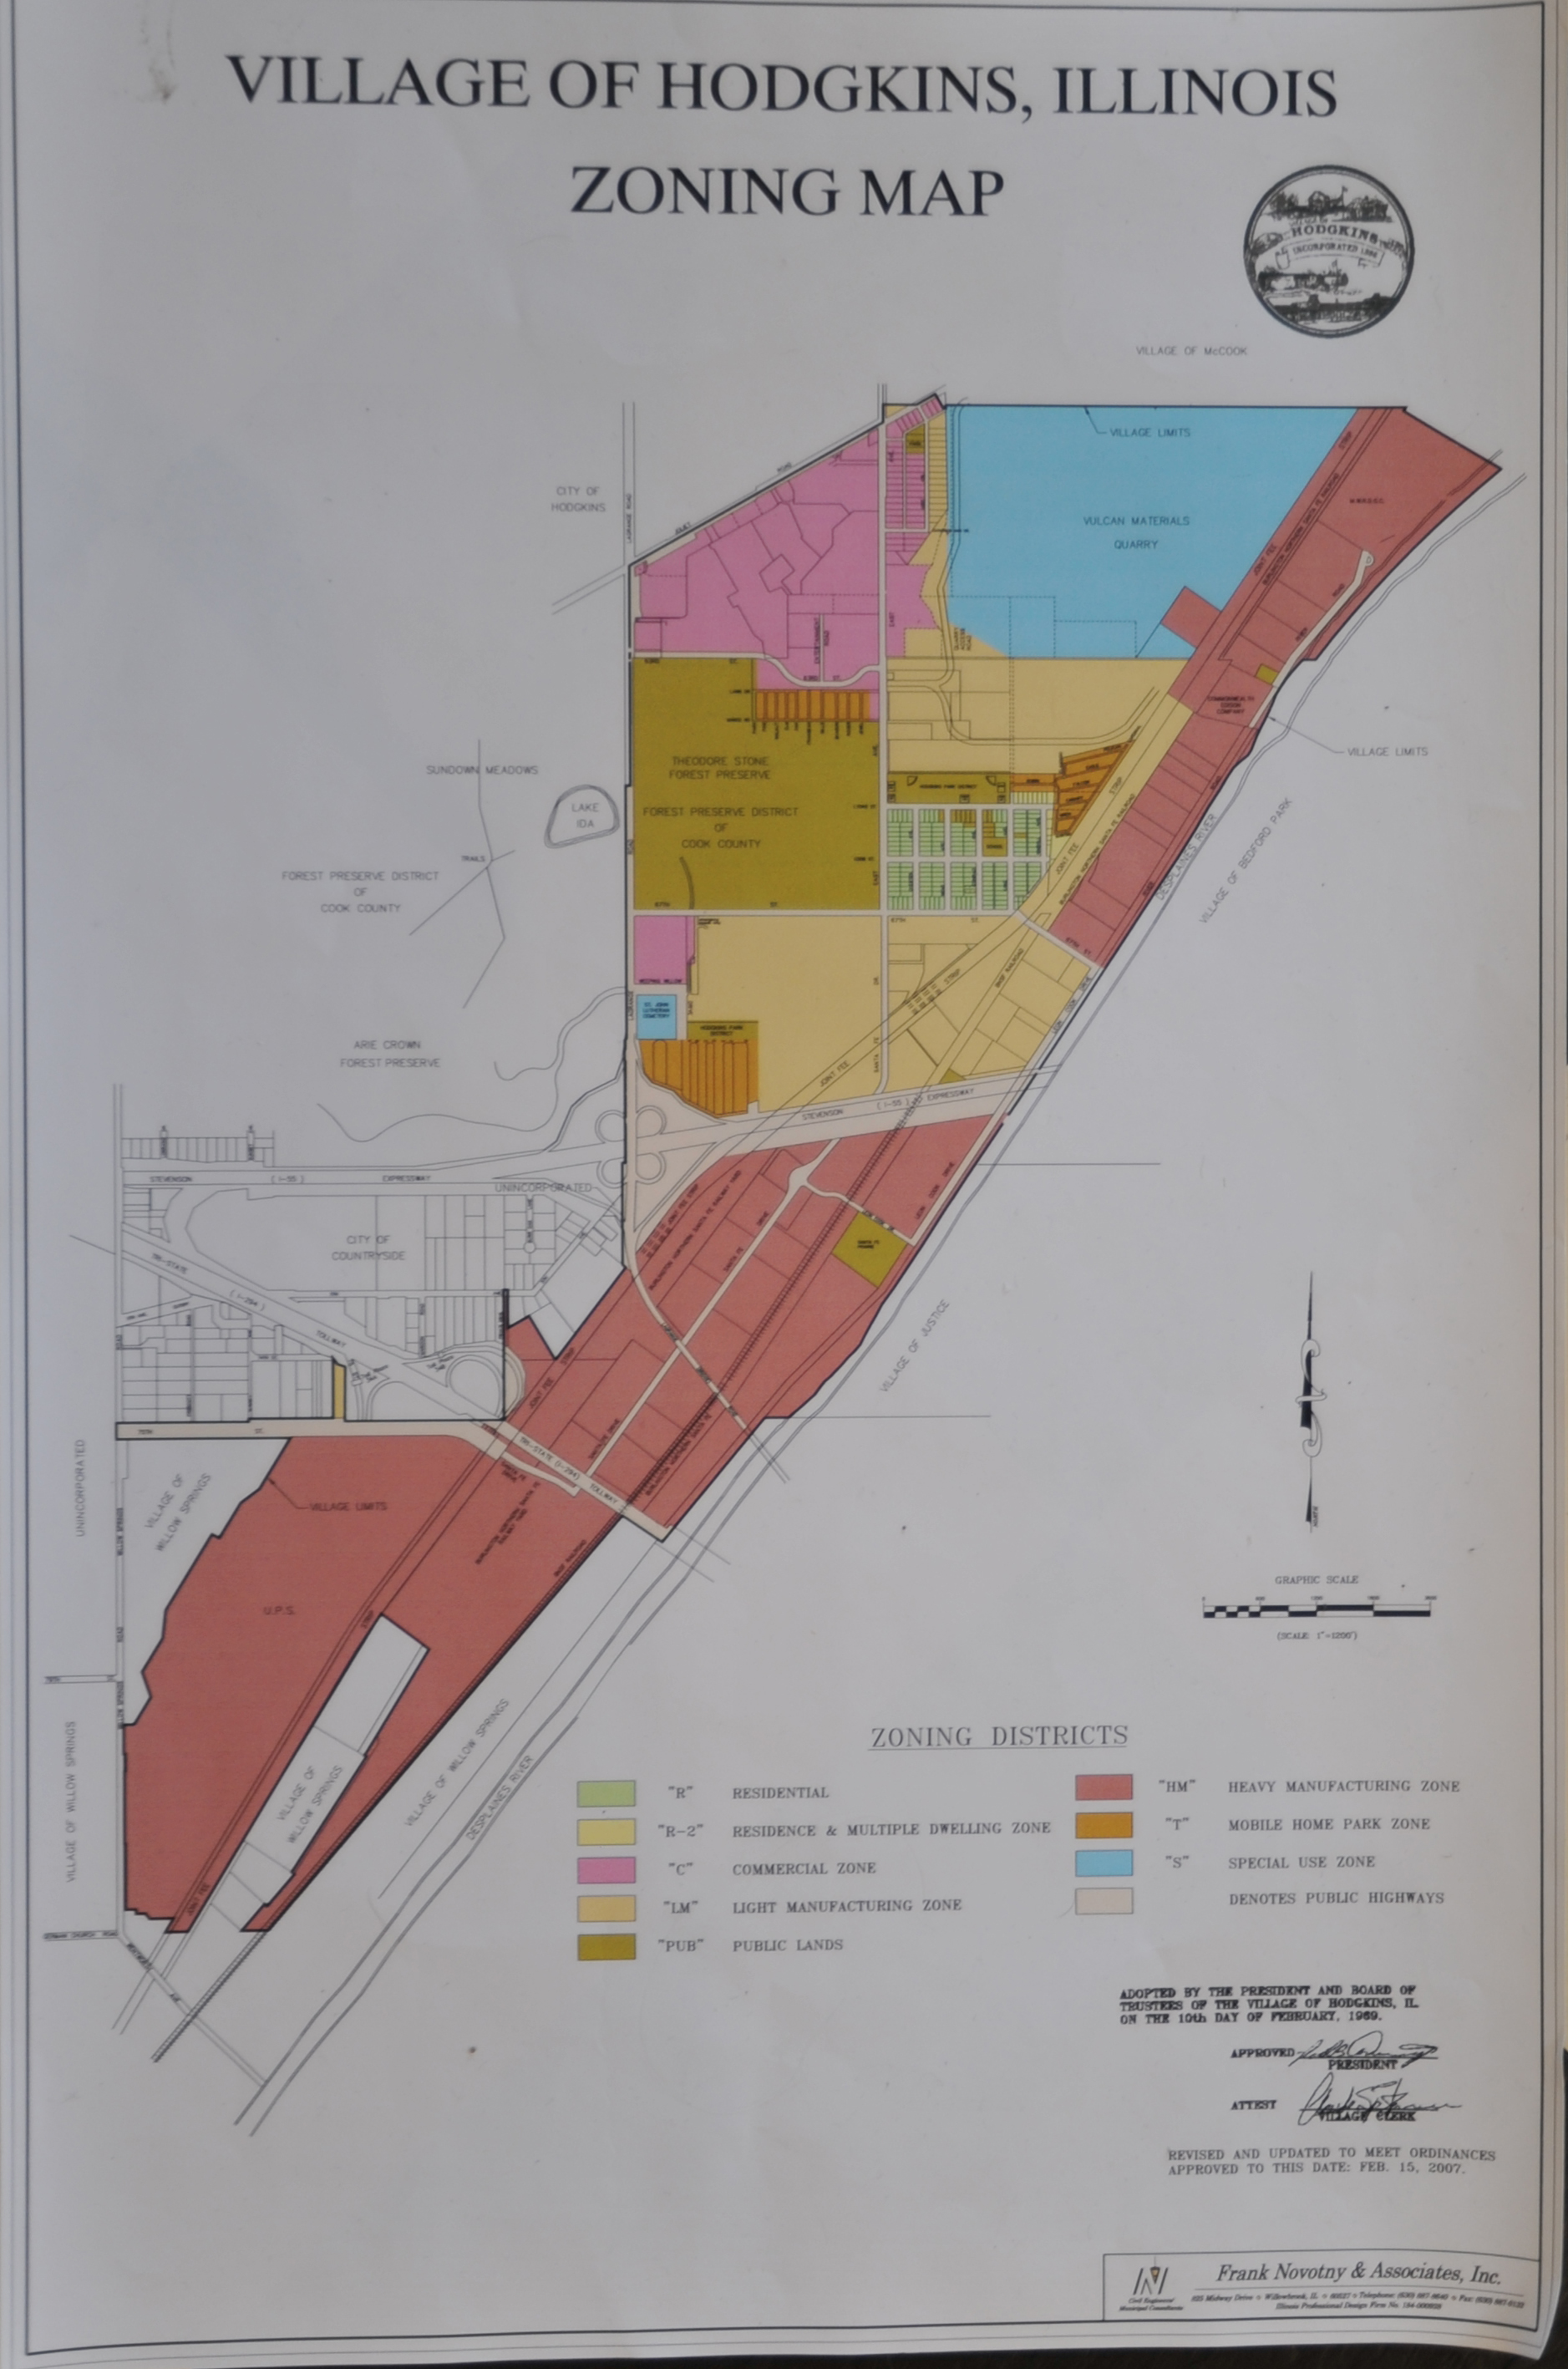 Zoning Maps For Bedford Park Justice And Hodgkins Illinois - Hodgkins il us map